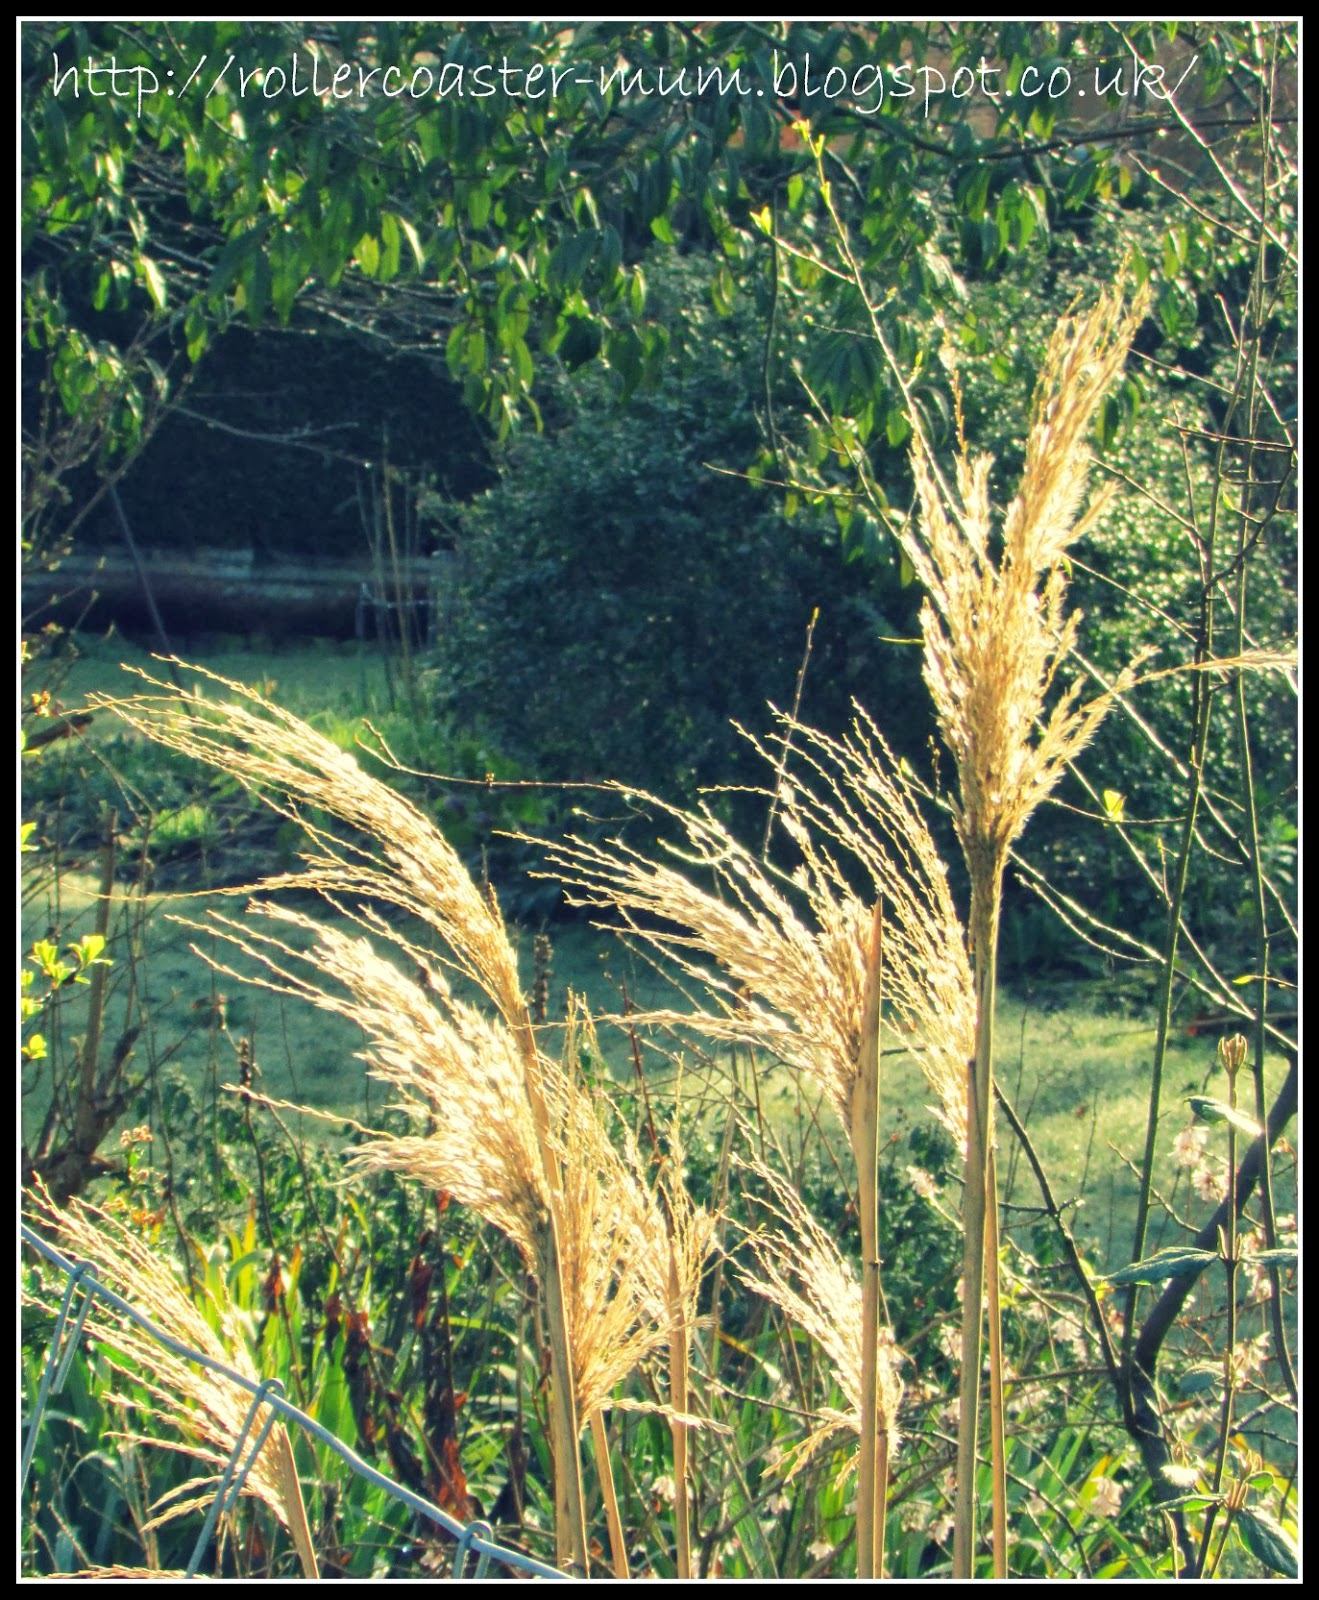 Grasses in the sunlight